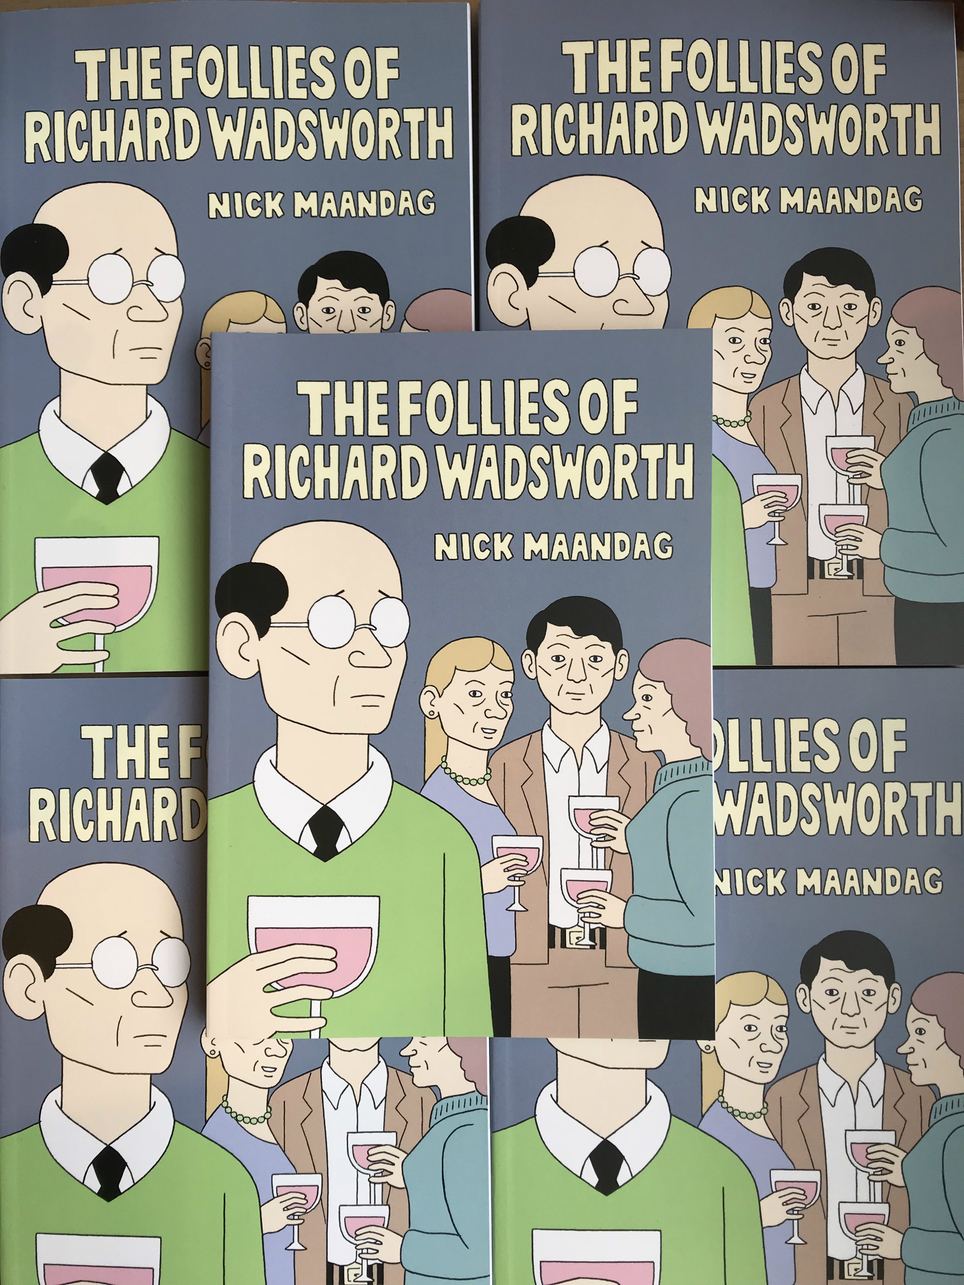 New D&Q: Nick Mandaag's The Follies of Richard Wadsworth is out now